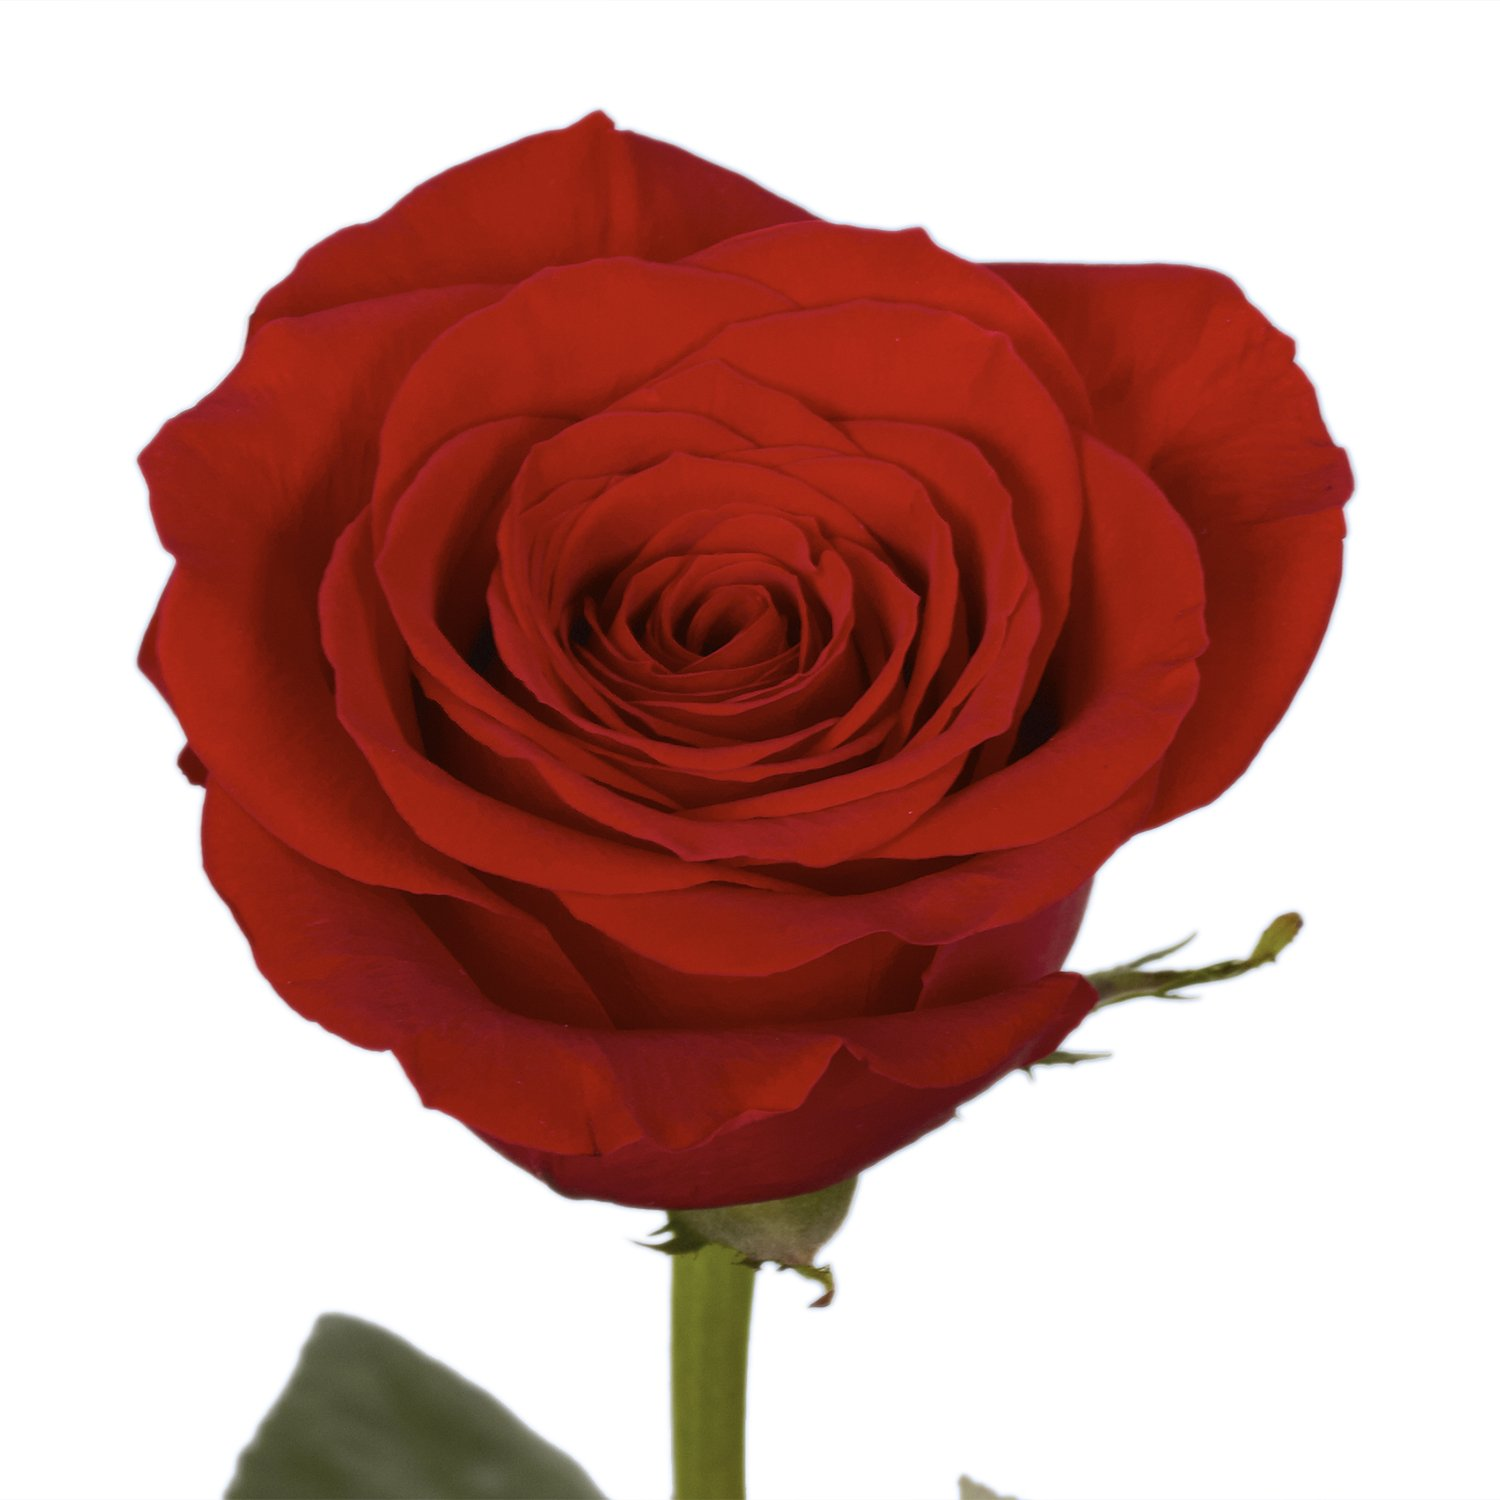 GlobalRose 100 Red Roses- Vibrant and Bright Red Blooms- Fresh Flowers Express Delivery) by GlobalRose (Image #4)